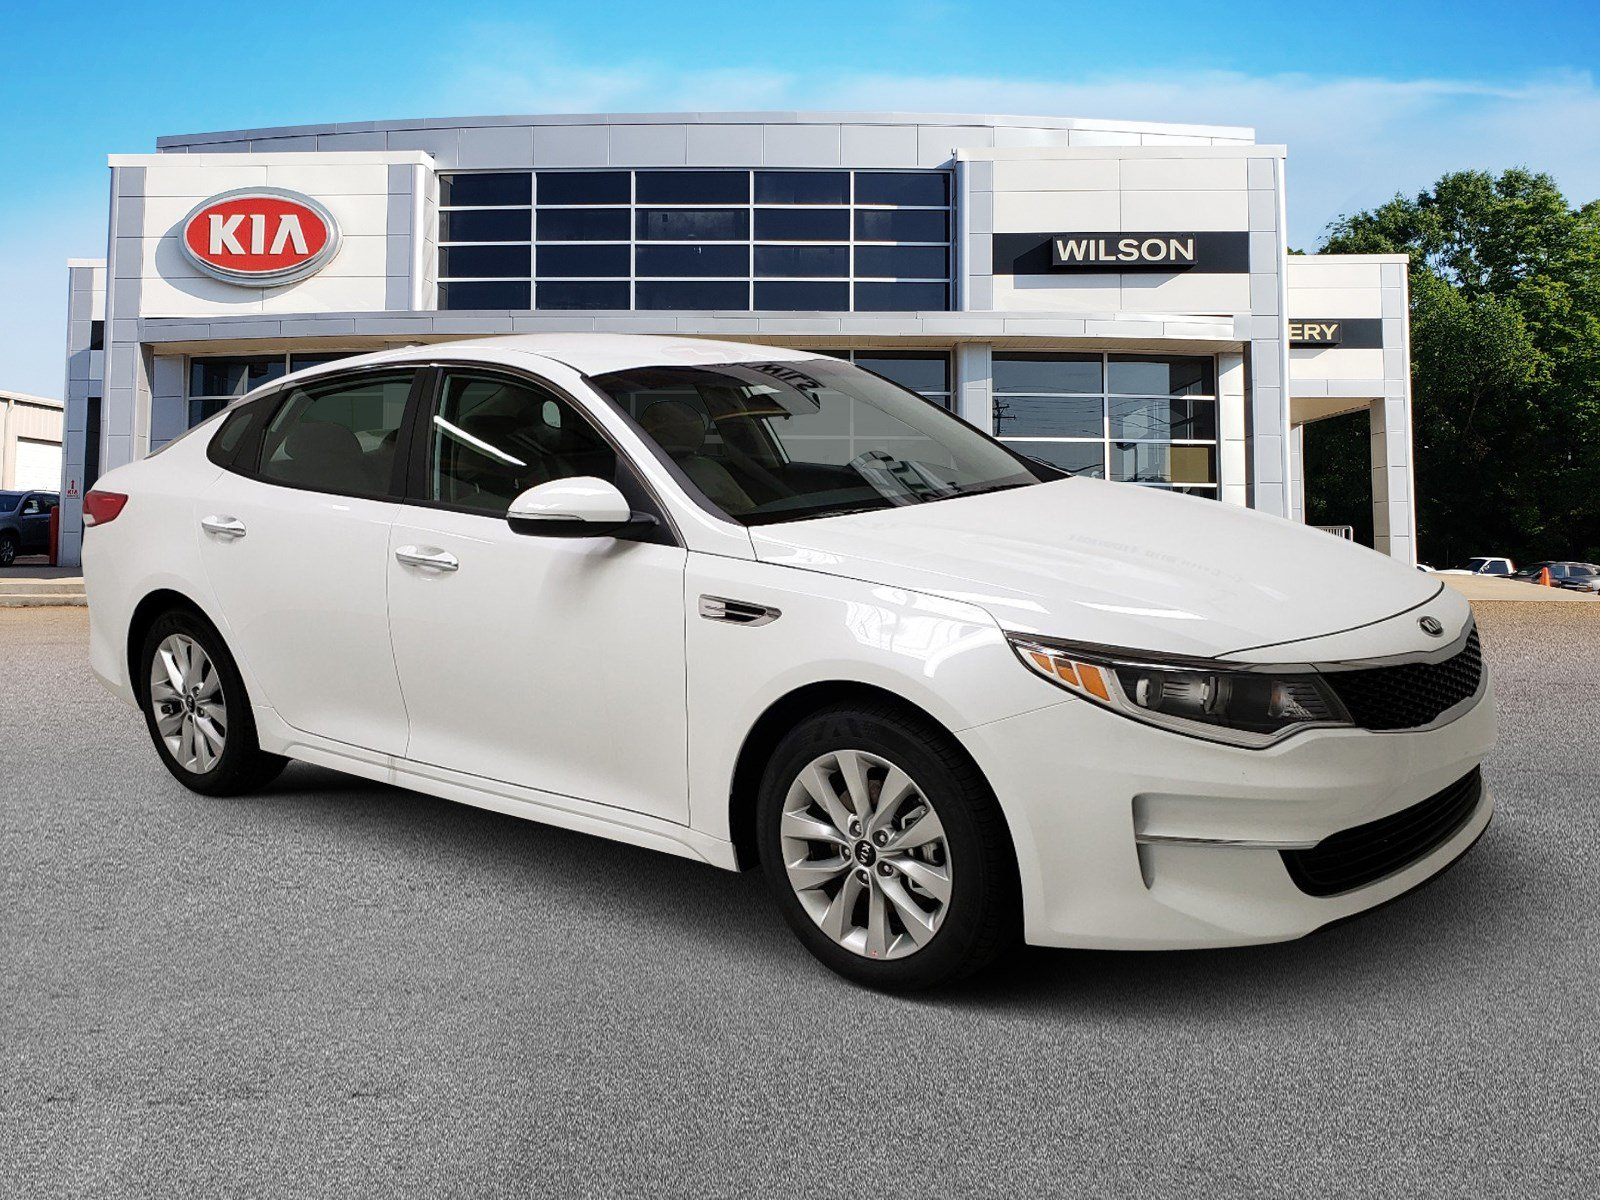 New 2018 Kia Optima Lx 4dr Car In Jackson Ms 39232 K253593 Rear View Camera